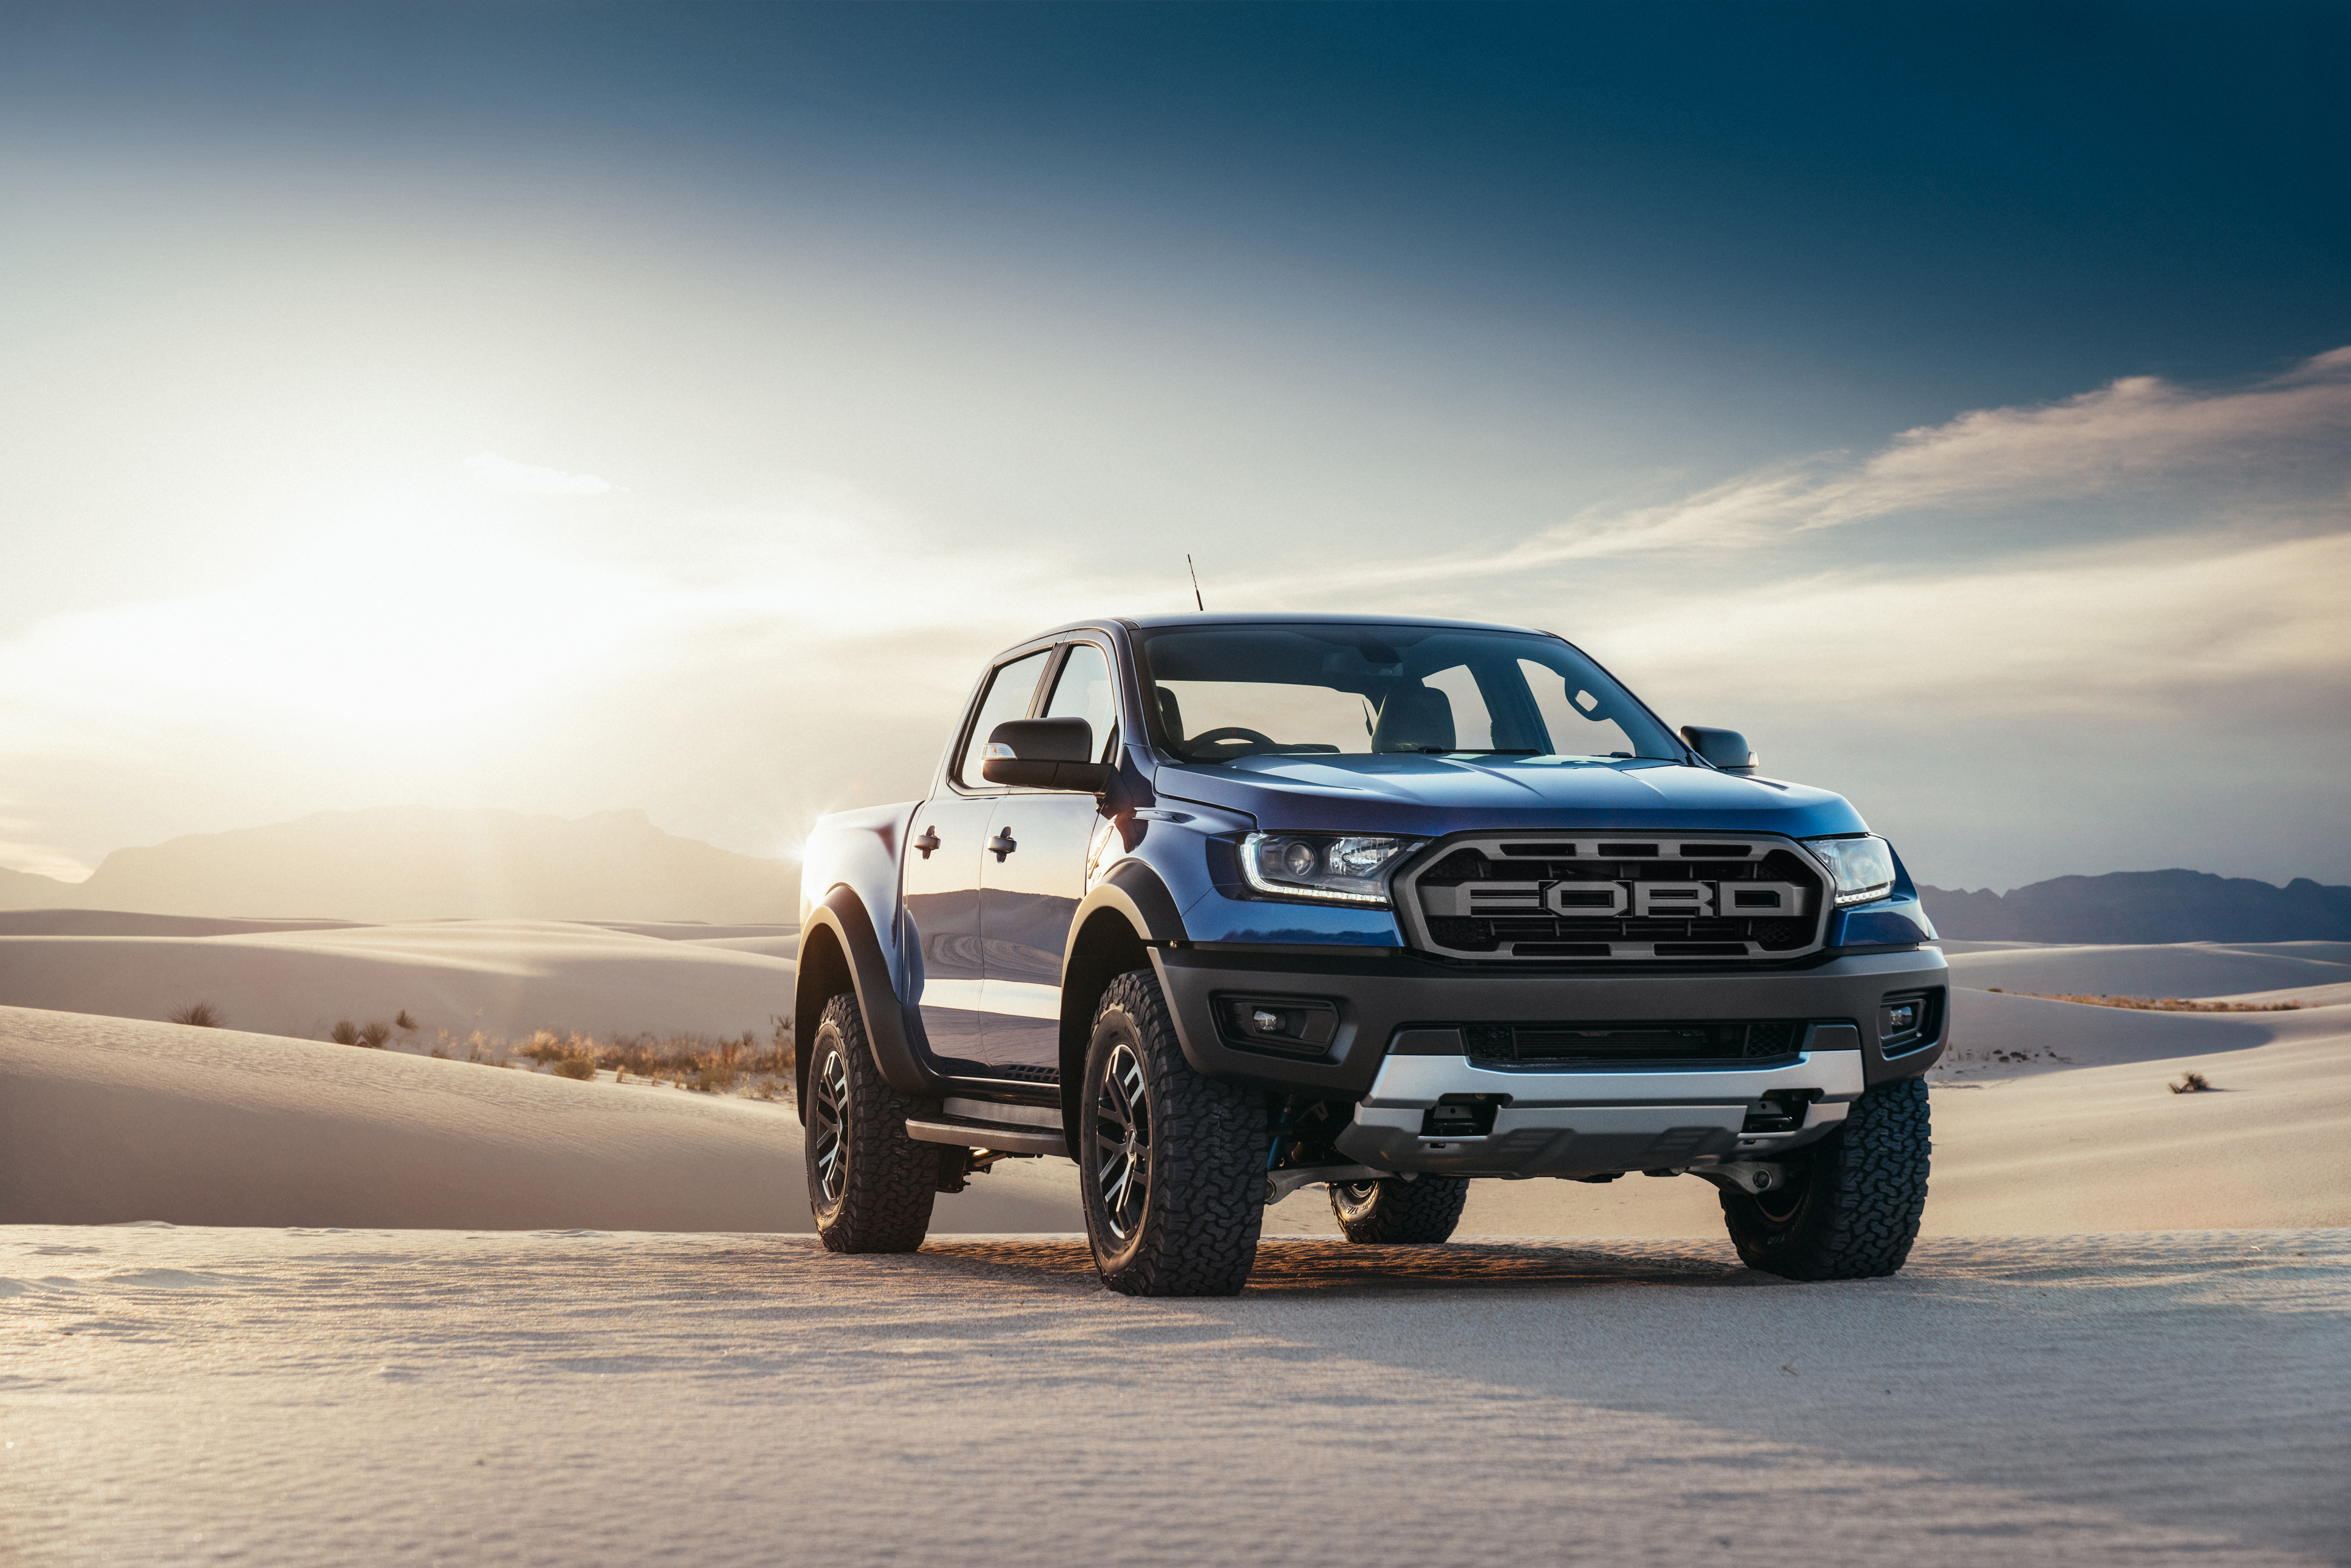 2019 Ford Ranger Raptor Hd Cars 4k Wallpapers Images Backgrounds Photos And Pictures